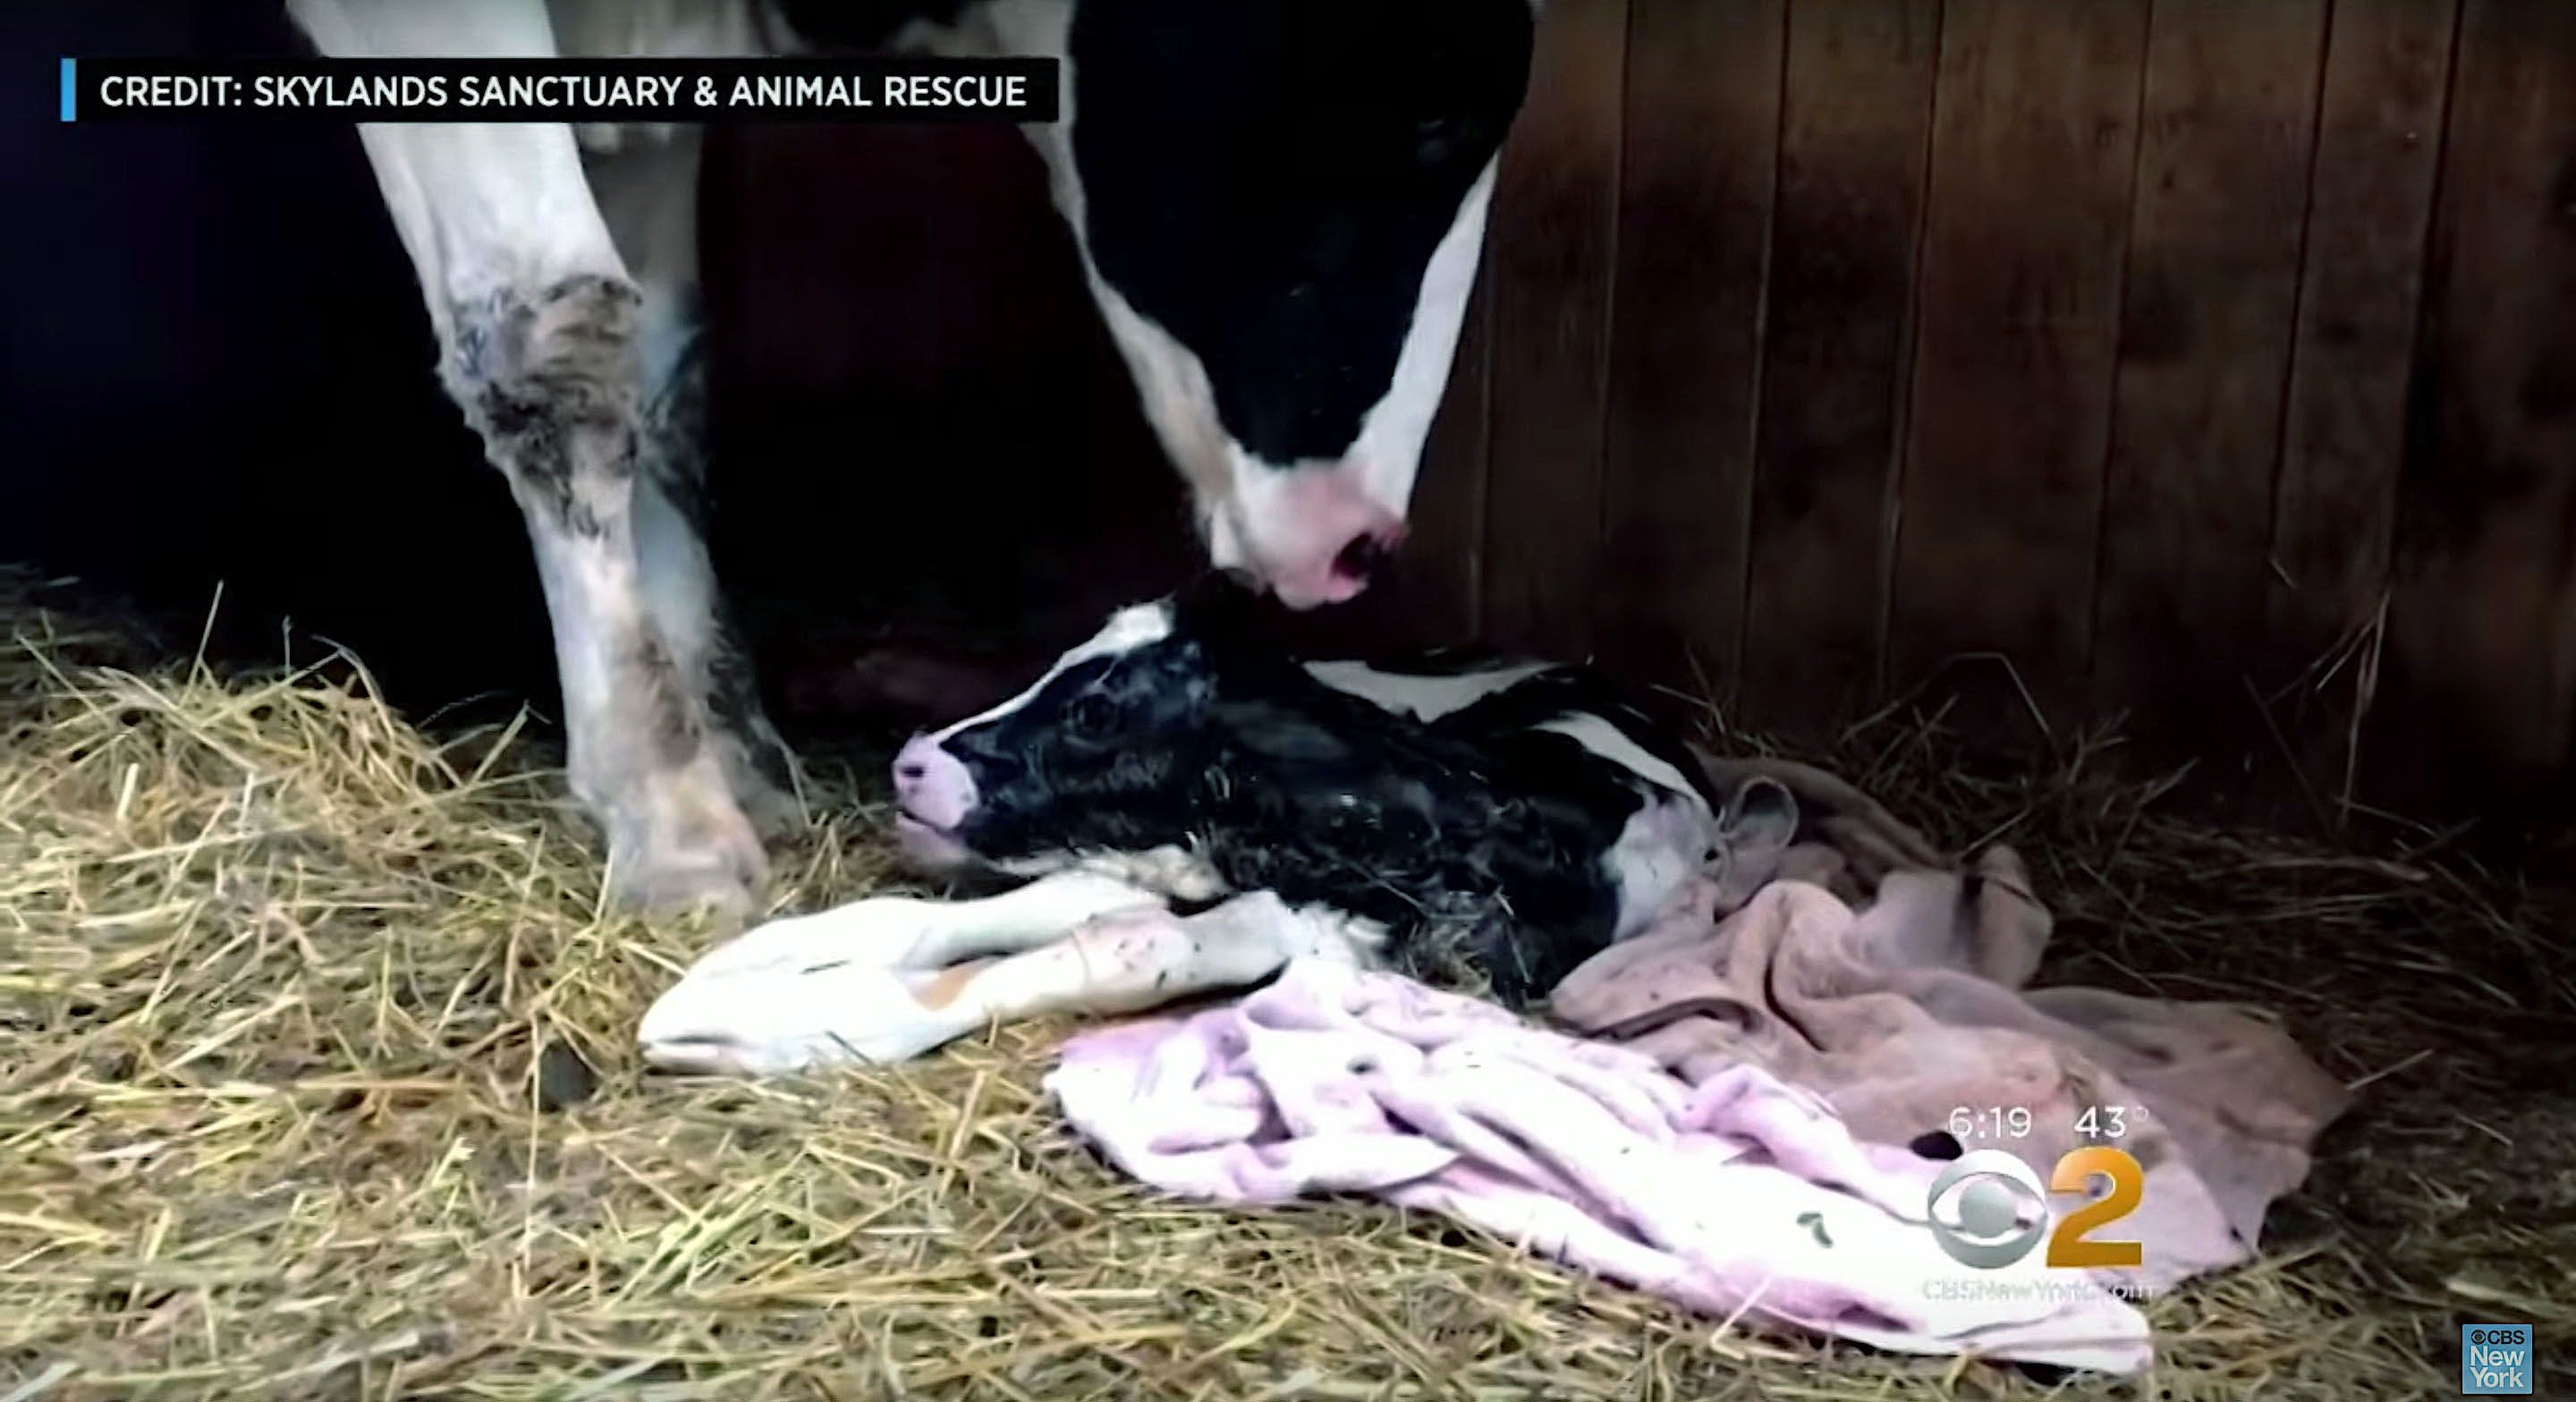 A cow that escaped from a slaughterhouse-bound truck gave birth to a calf.